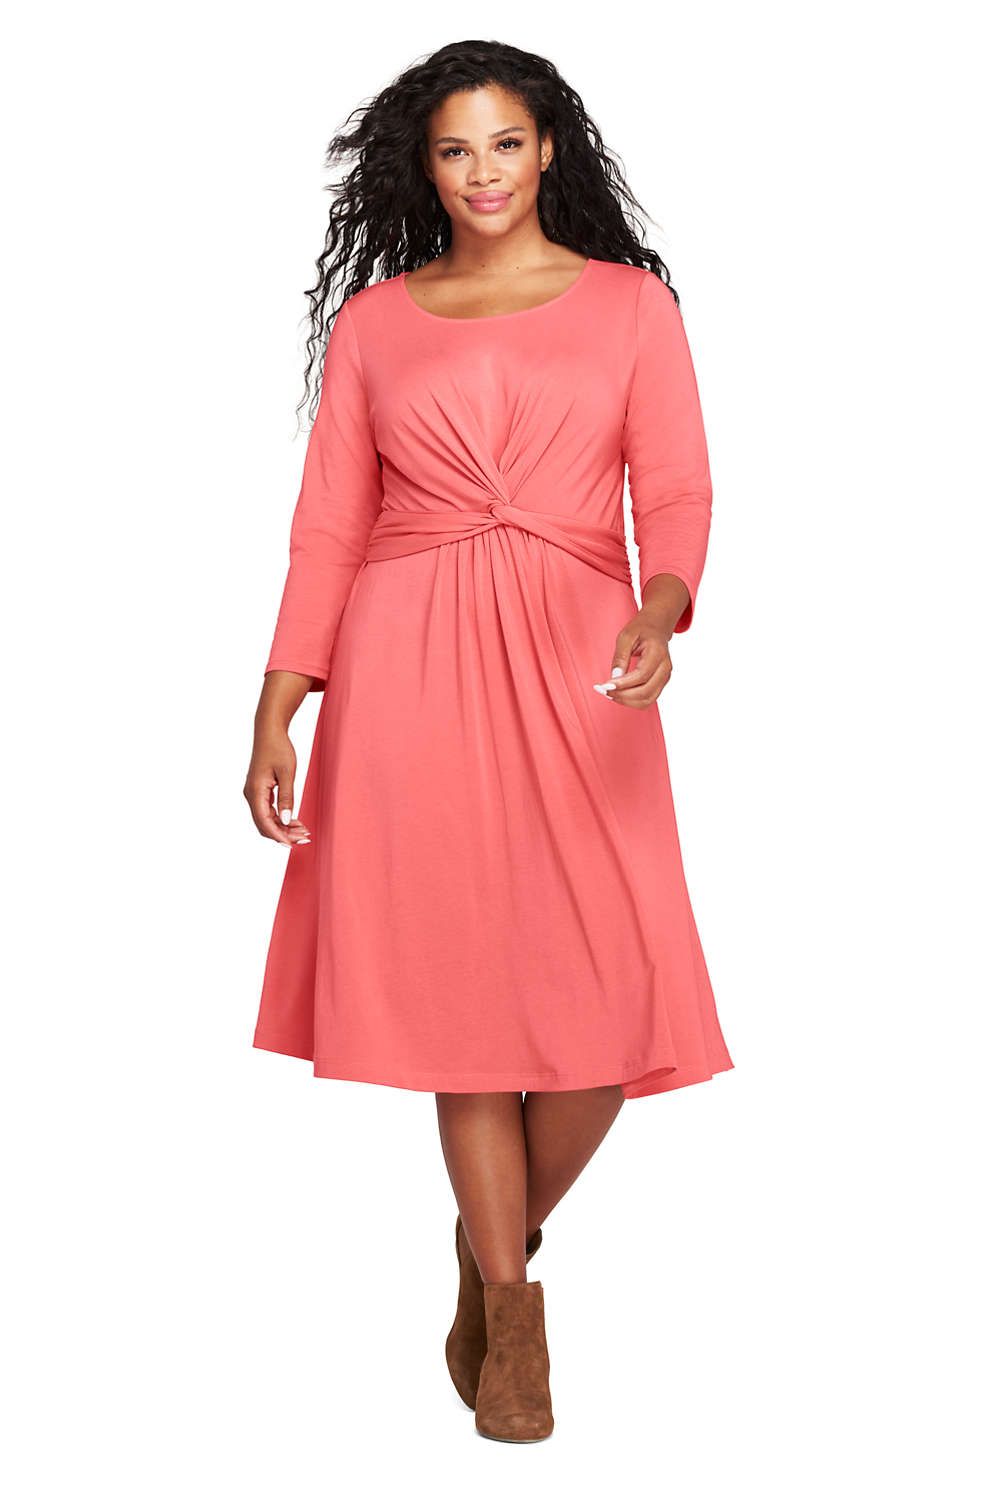 f348c559a21c1b Women's Plus Size 3/4 Sleeve Draped Fit and Flare Dress from Lands' End